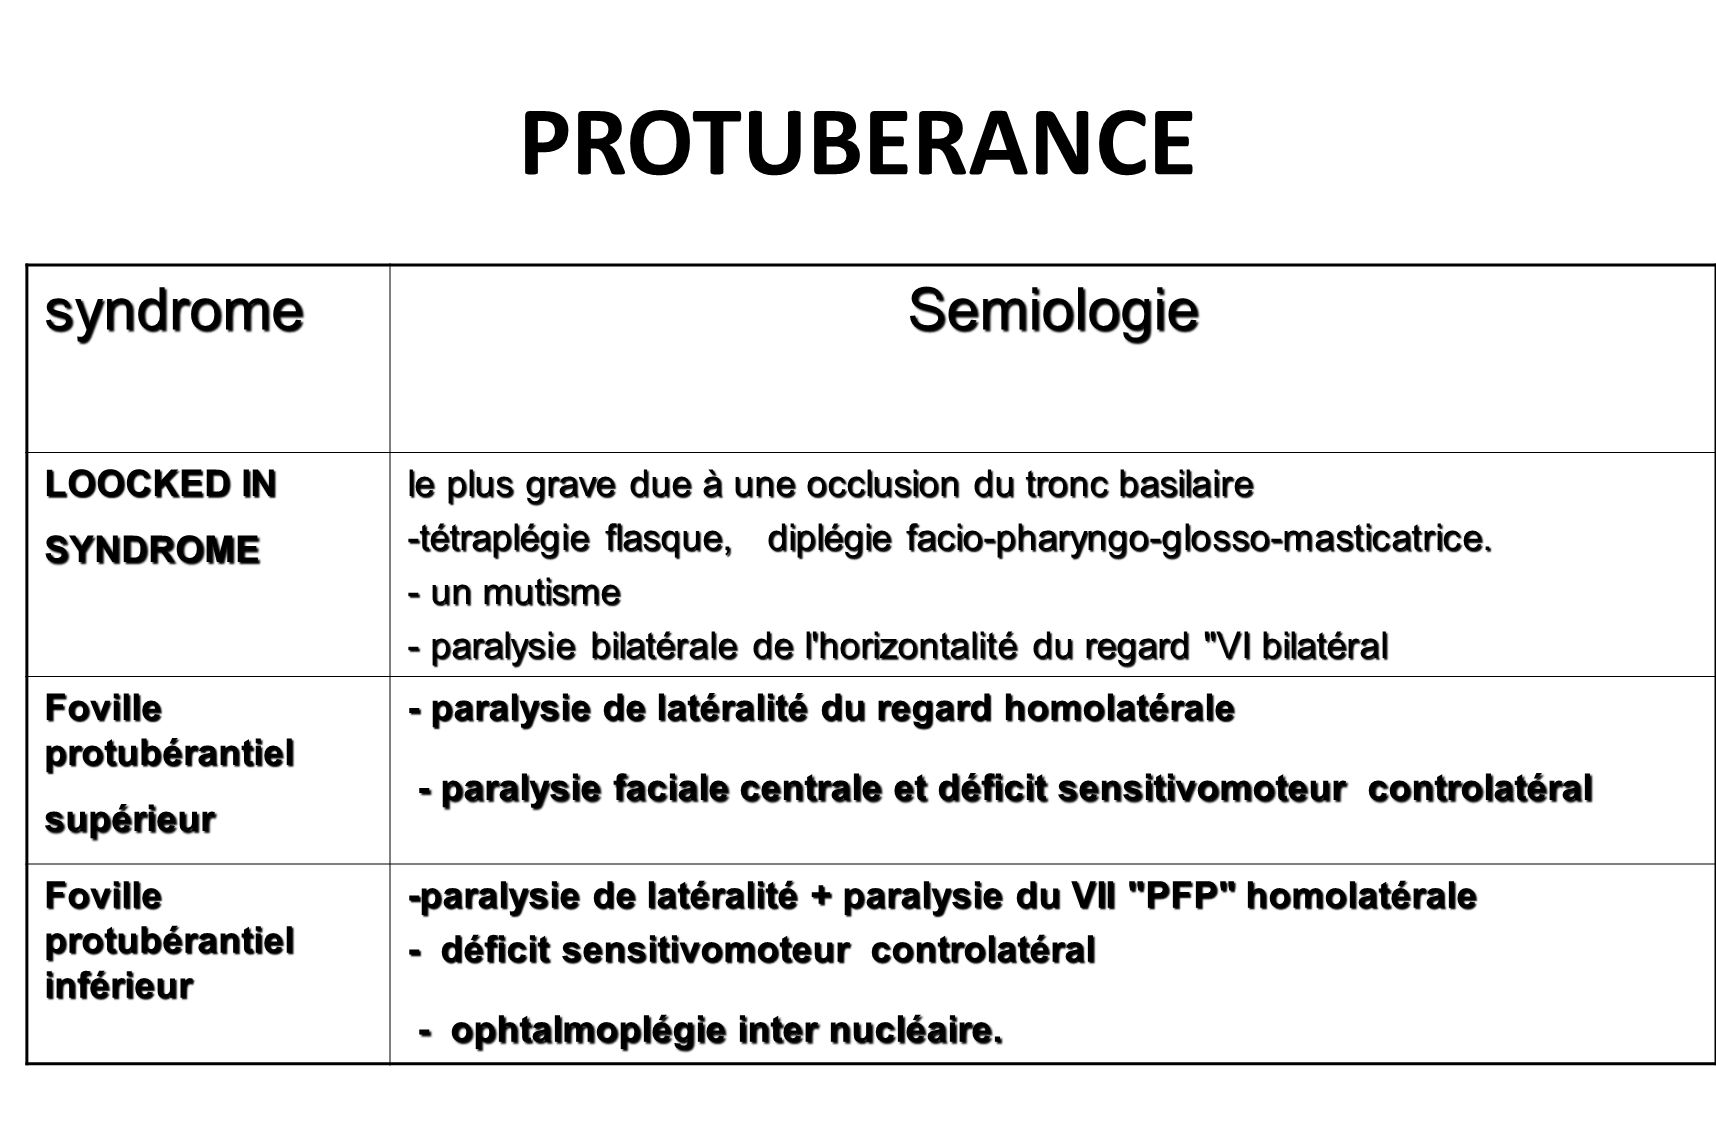 PROTUBERANCE Semiologie syndrome